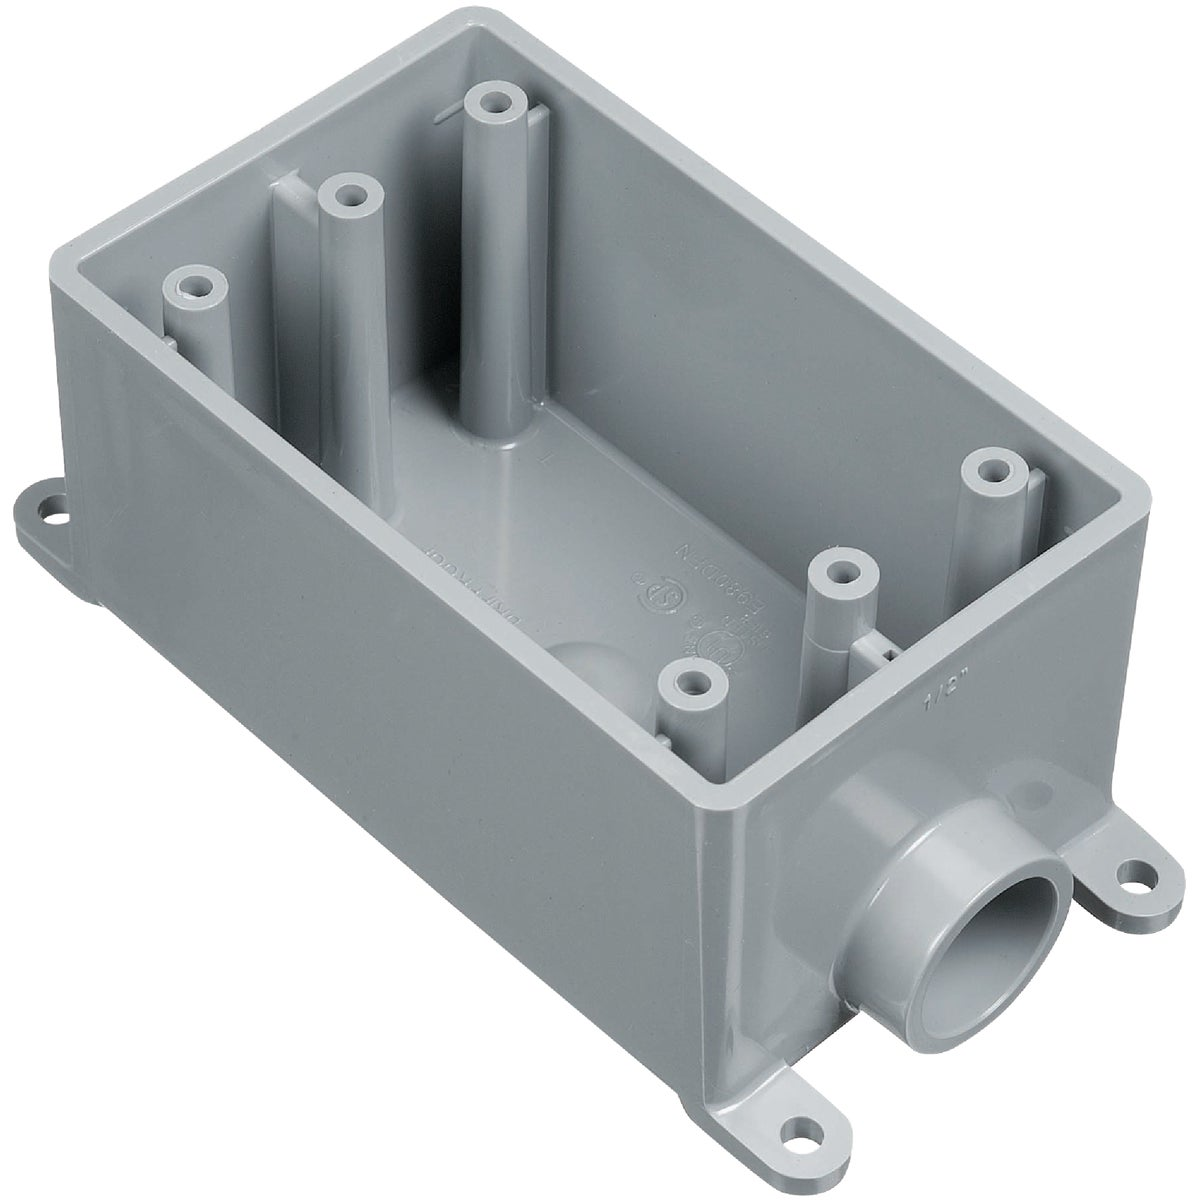 Thomas & Betts Dead-End Termination Outlet Box